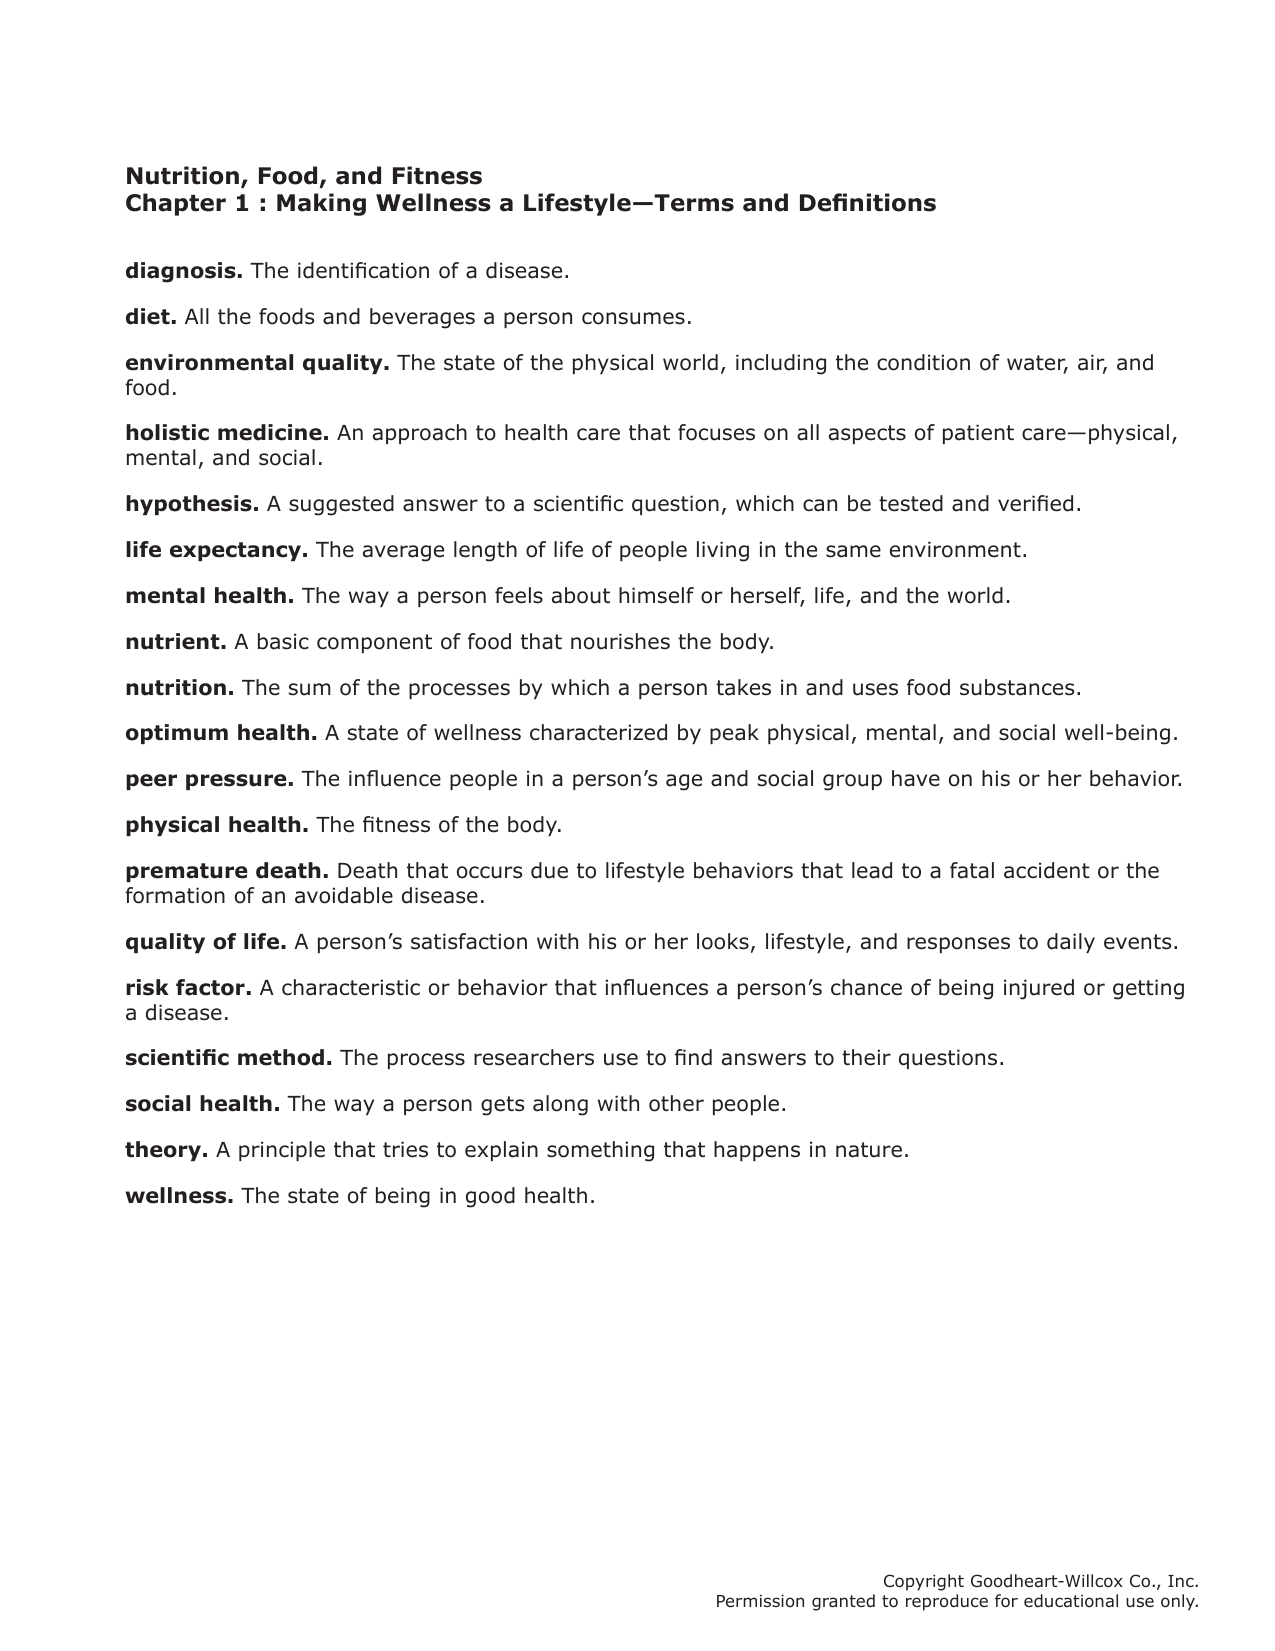 Nutrition, Food, and Fitness Chapter 1 : Making Wellness a Lifestyle